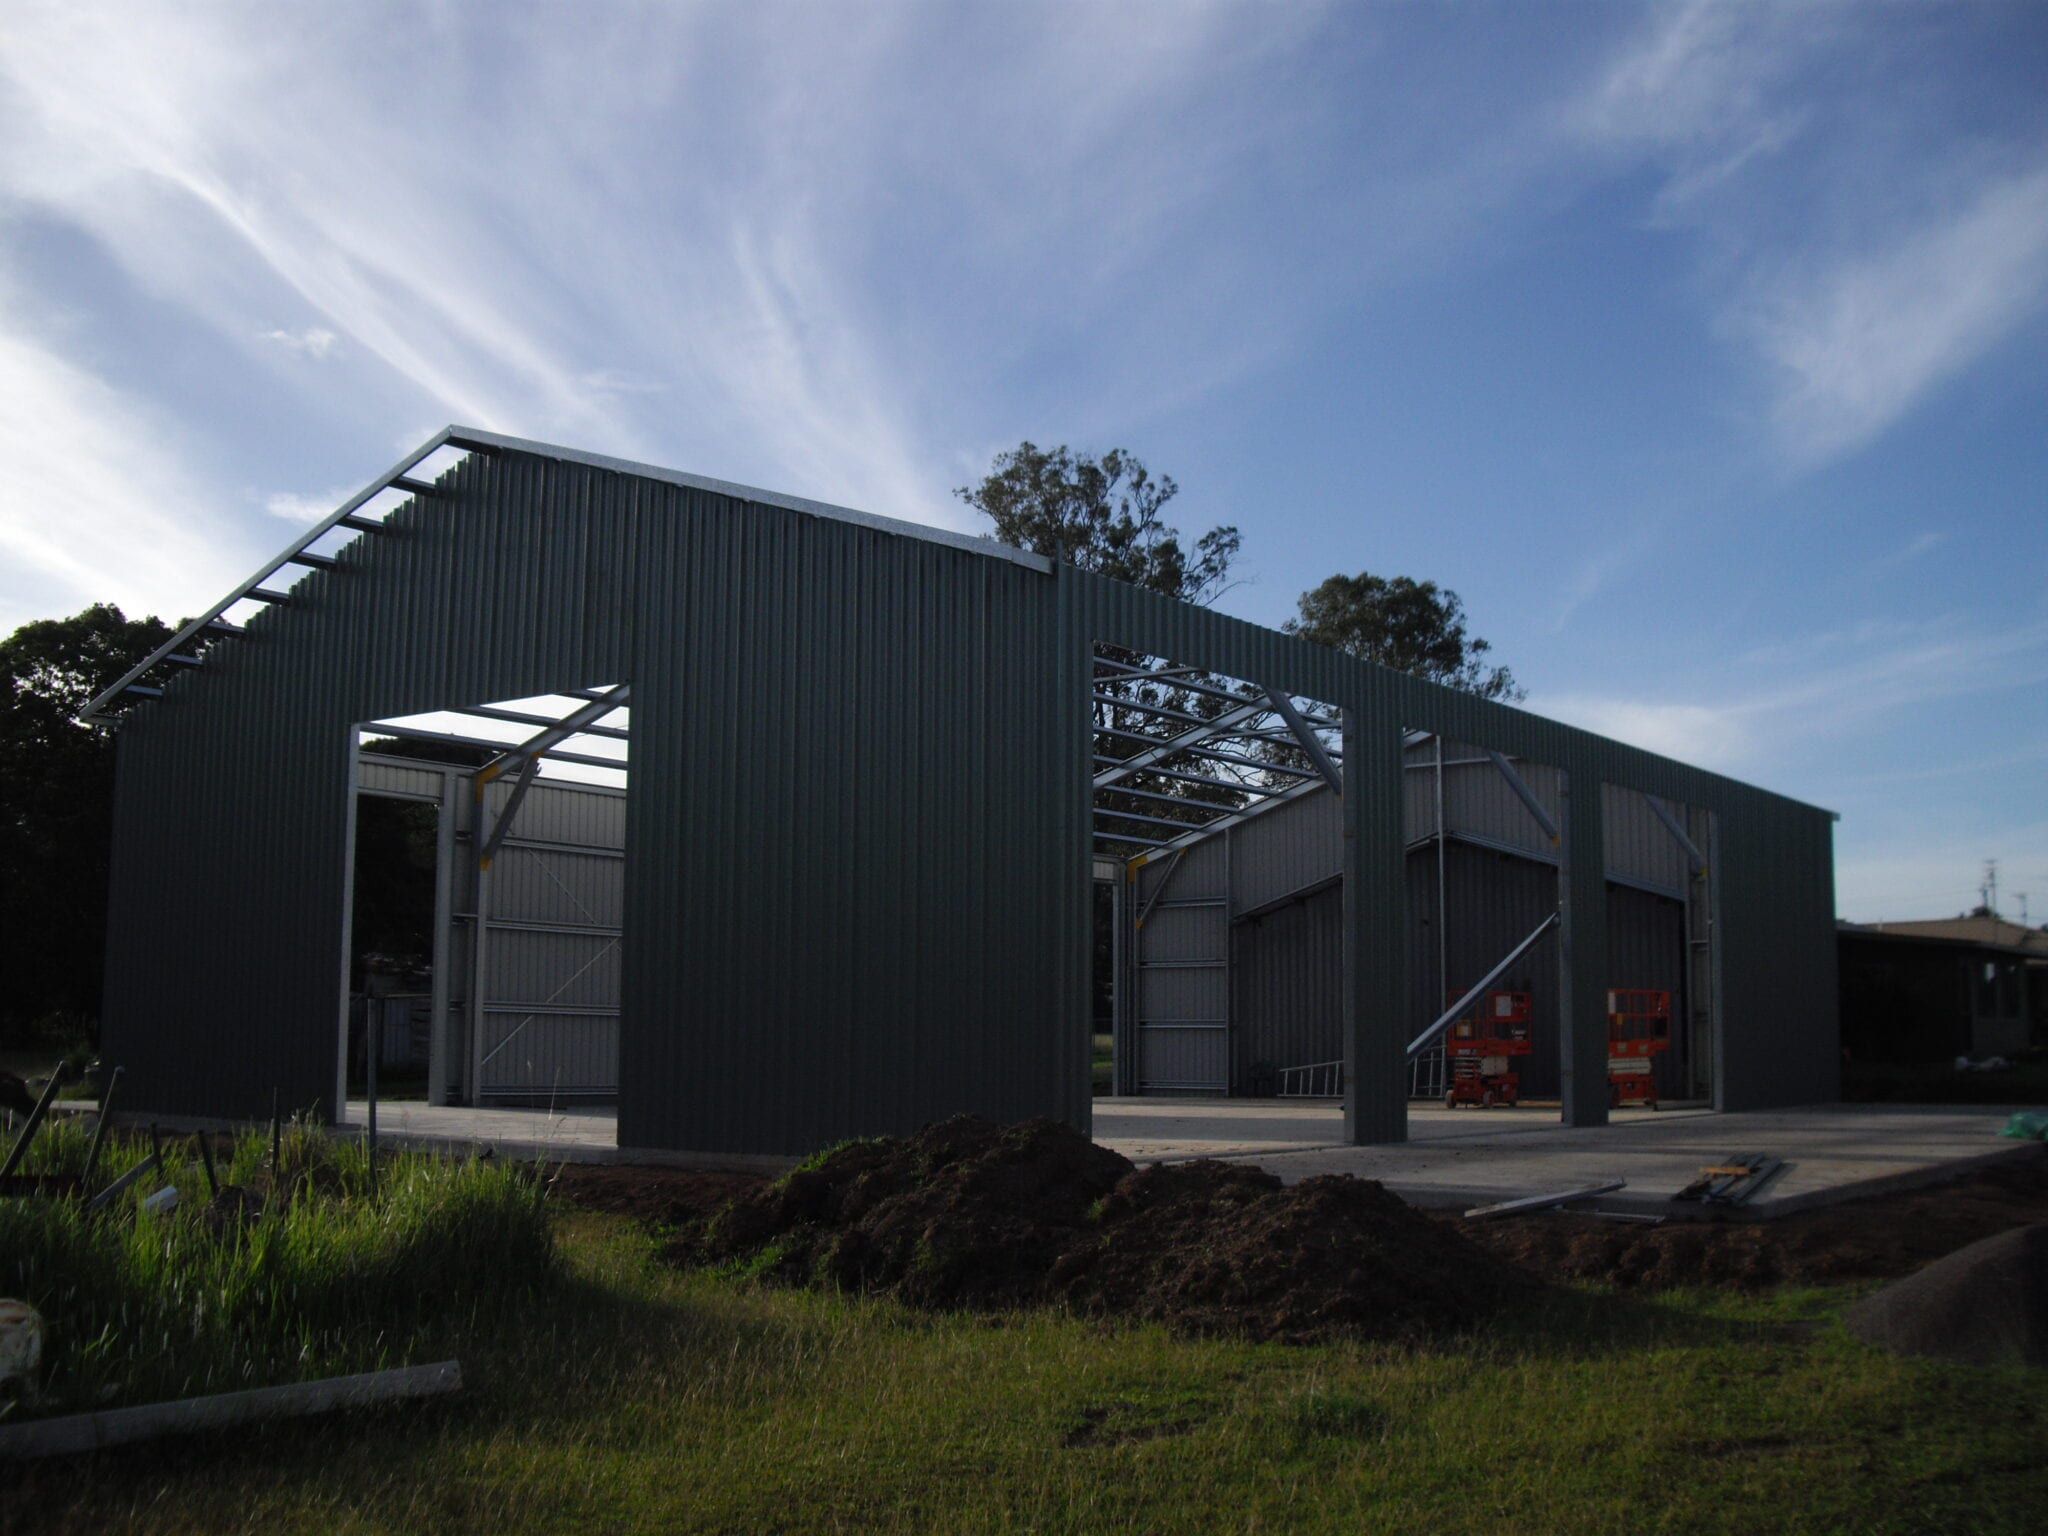 Industrial gable steel frame with sheets